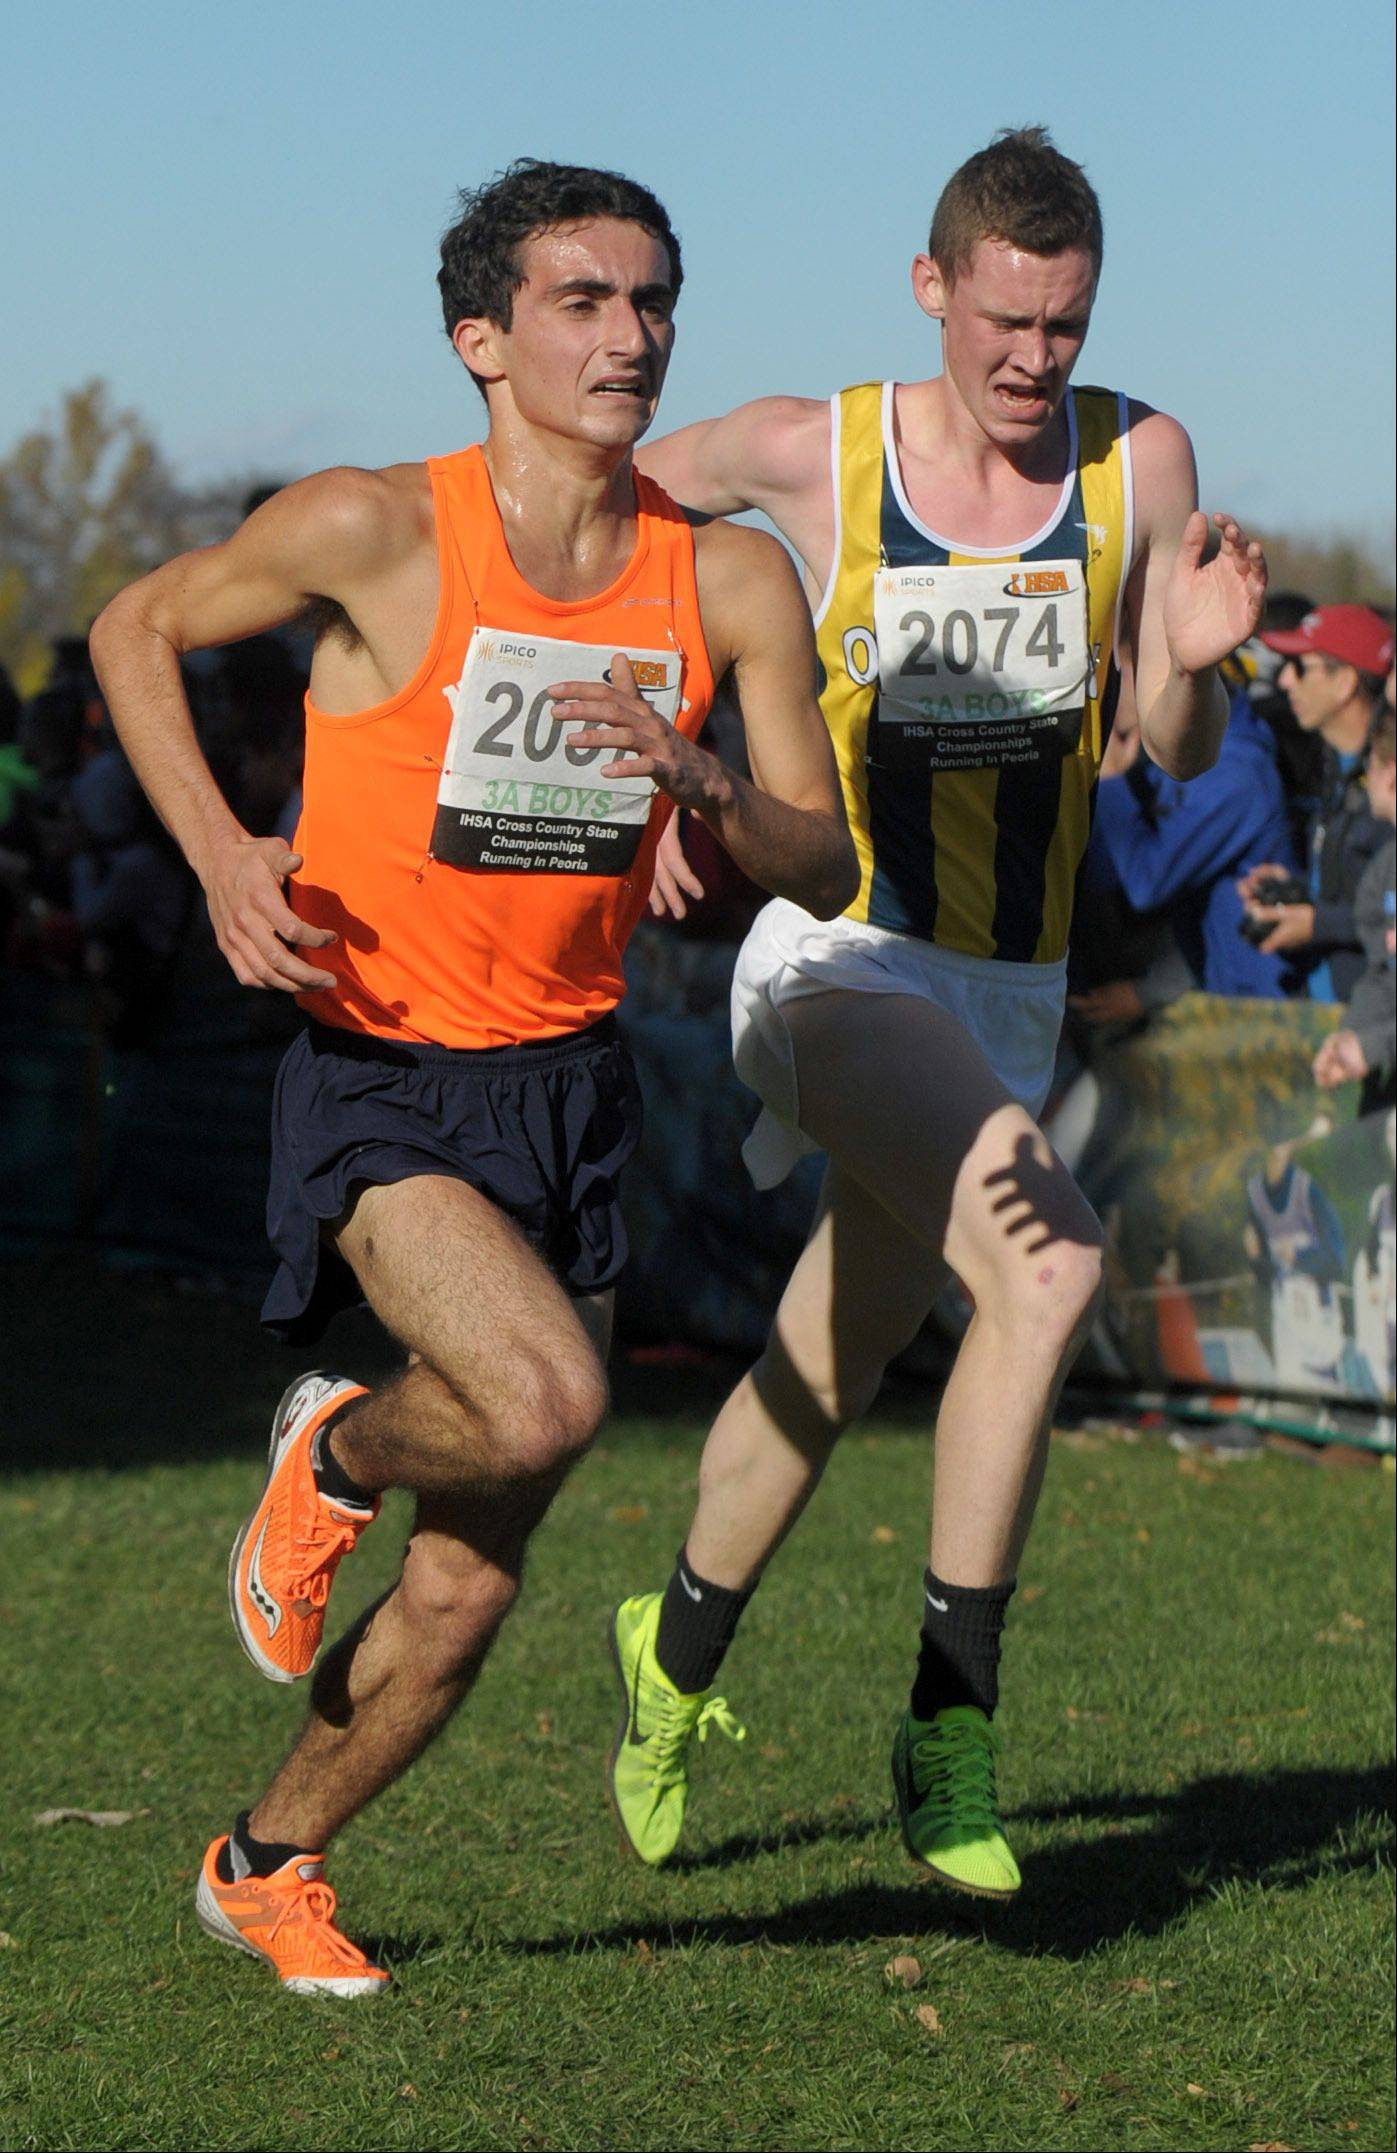 Naperville North's Jake Pecorin (left) takes 54th place beating O'Fallon's Evan Wesslund in the Class 3A IHSA cross country state final at Detweiller Park in Peoria on Saturday, November 9.